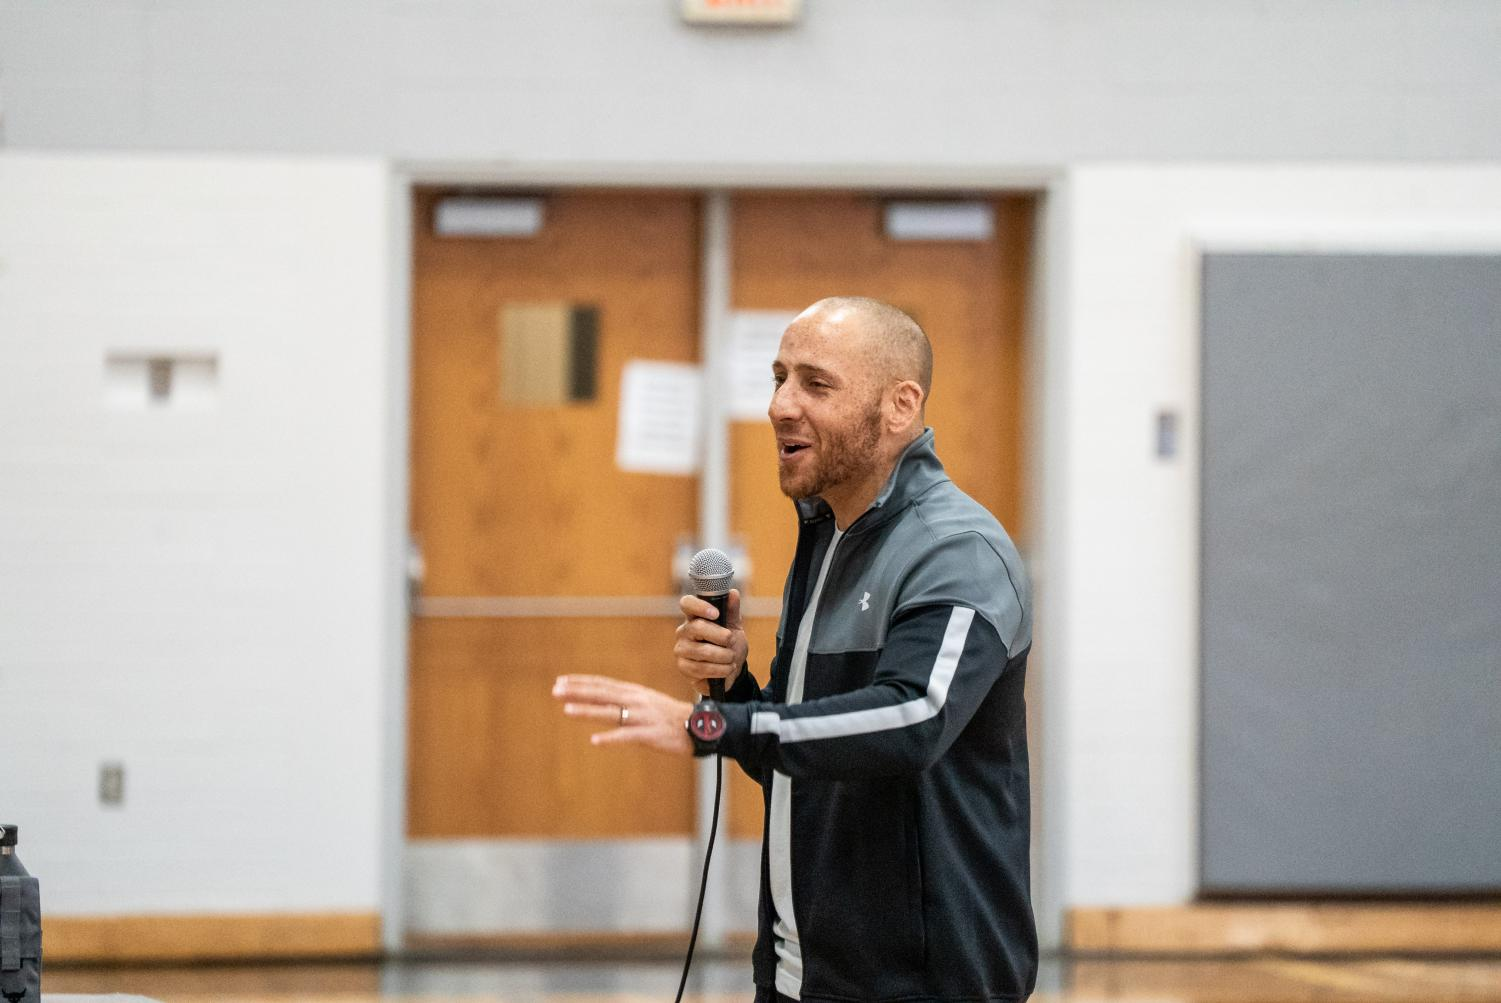 Suicide prevention advocate Kevin Hines shares his story in the Regents Main Gym on Nov. 19.